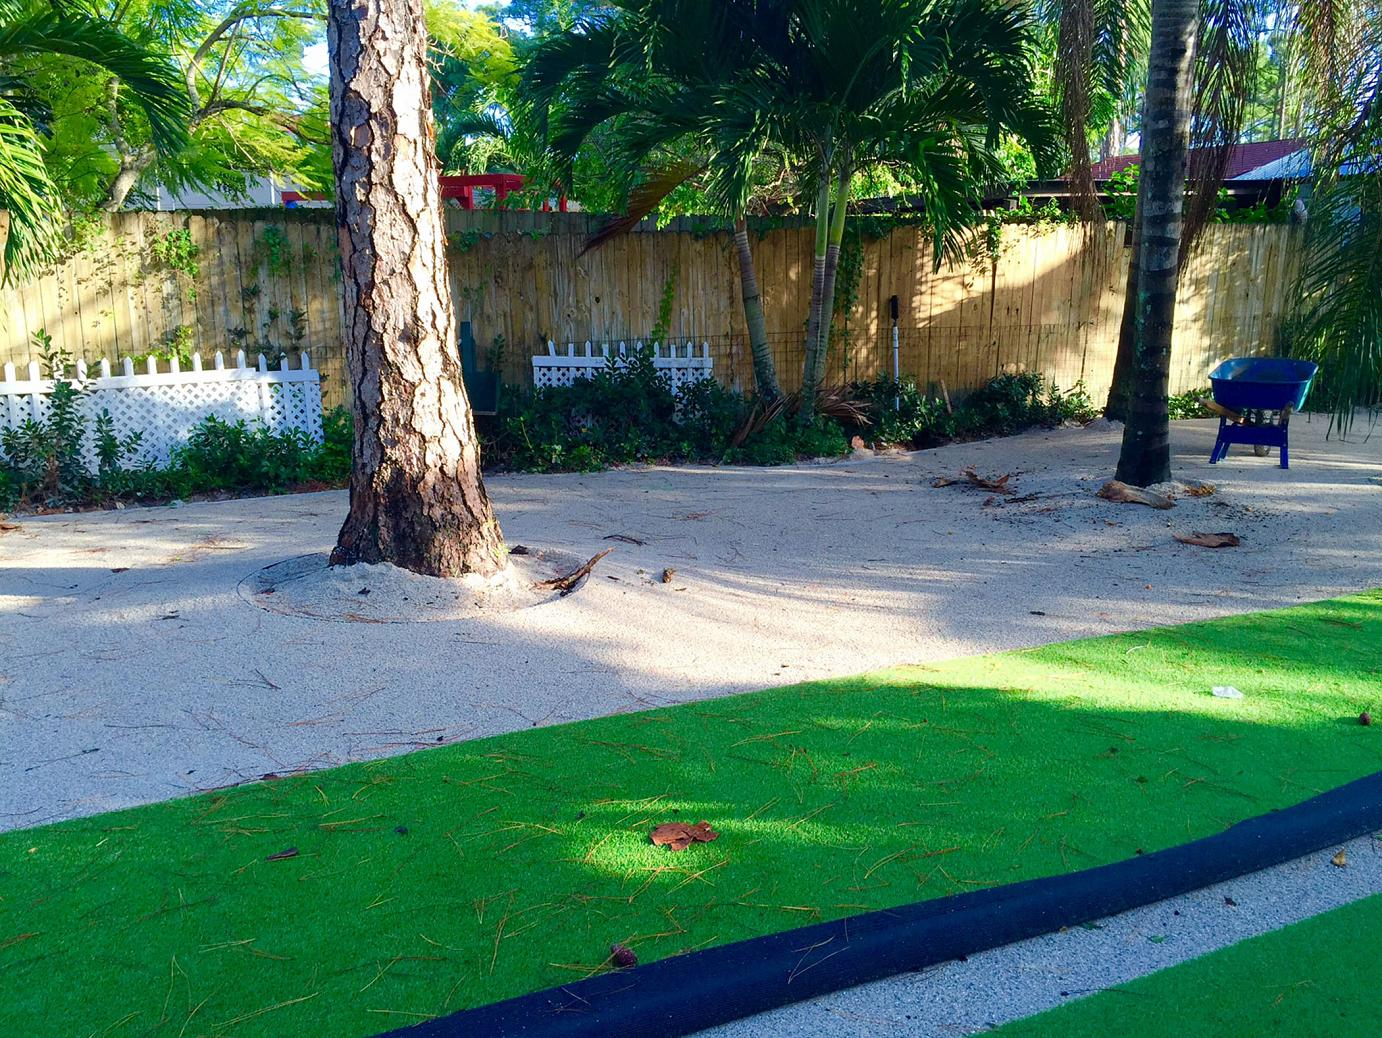 Artificial Grass: Fake Turf Chilton, Texas Lawn And Garden, Commercial Landscape